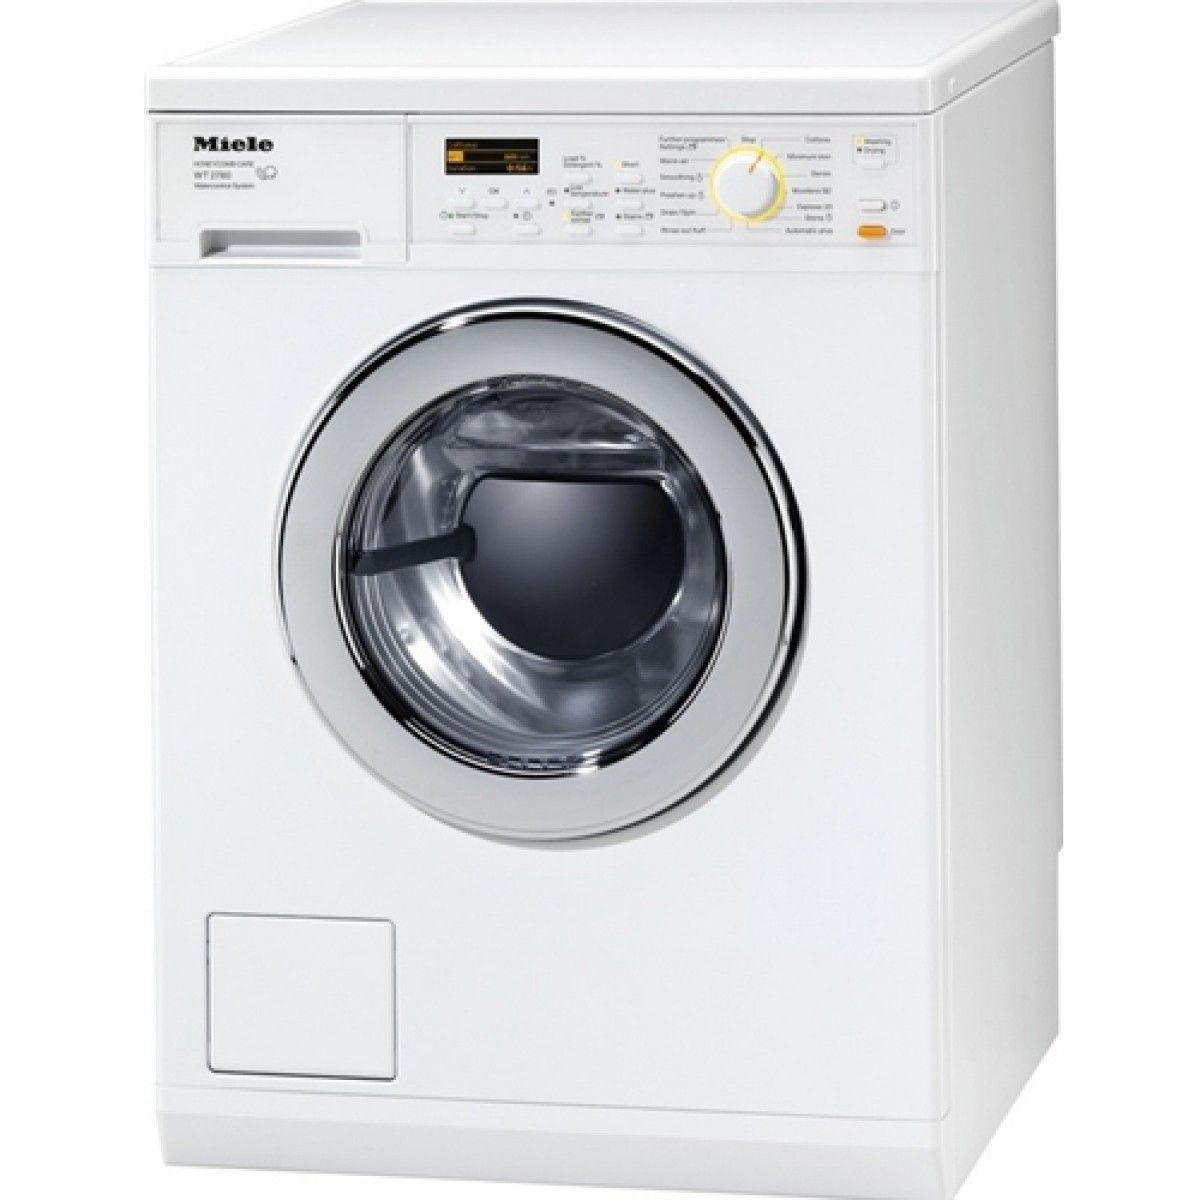 Miele stackable washer dryer ventless - Miele 5 5kg 2 5kg Washer Dryer Combination Wt2780wpm